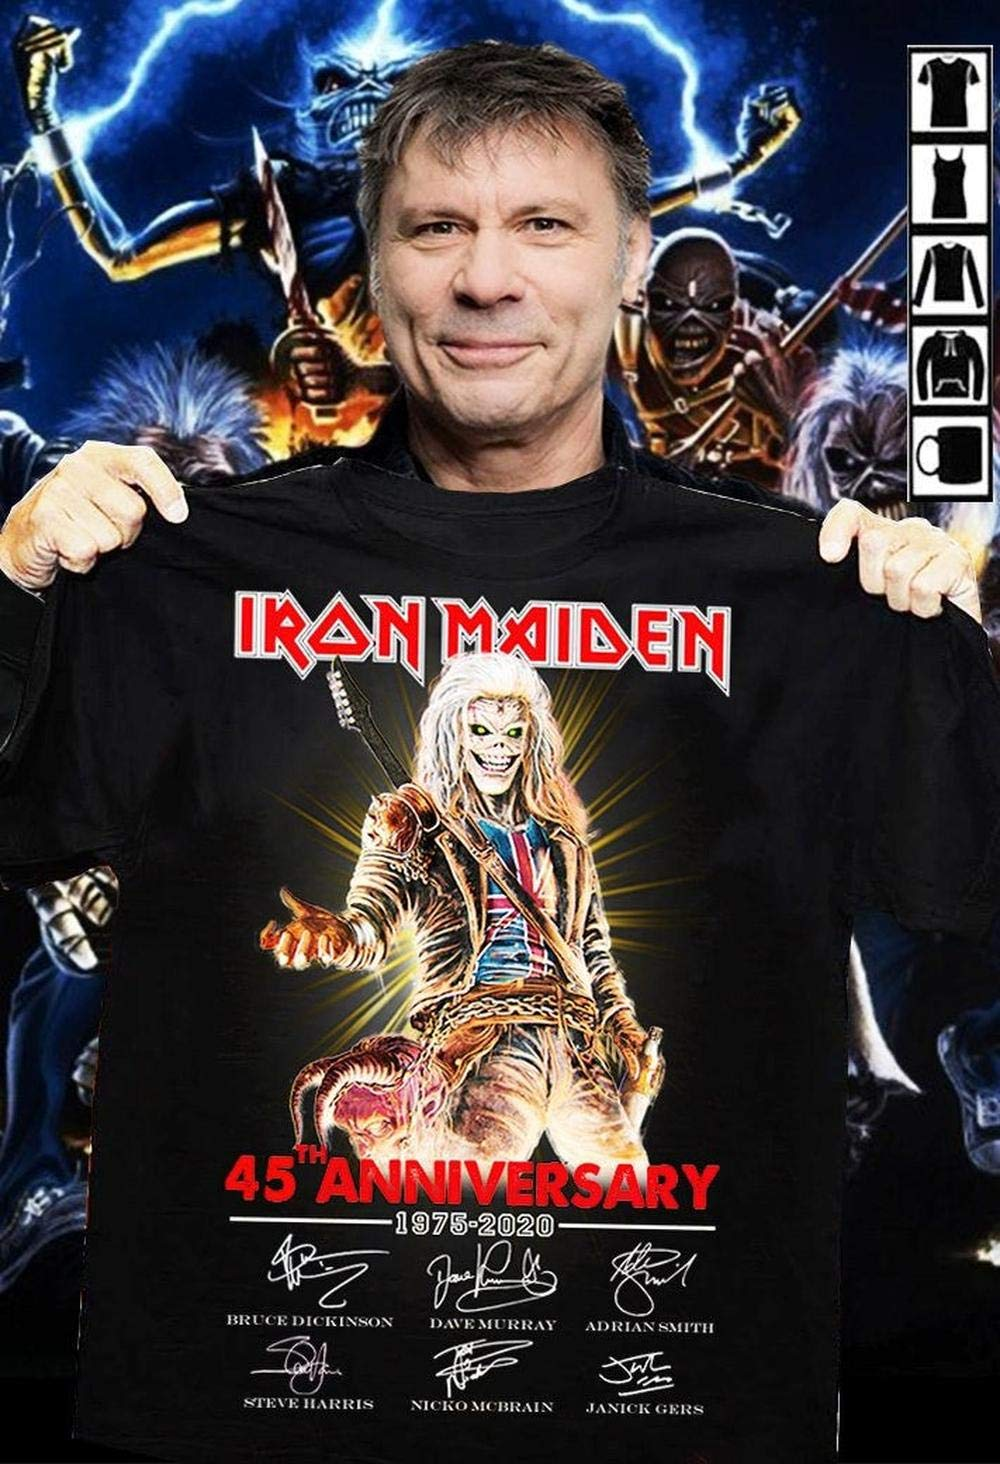 Iron Maiden Tour 2020.Iron Maiden 45th Anniversary 1975 2020 Signature Shirt Unisex T Shirt Men S T Shirt